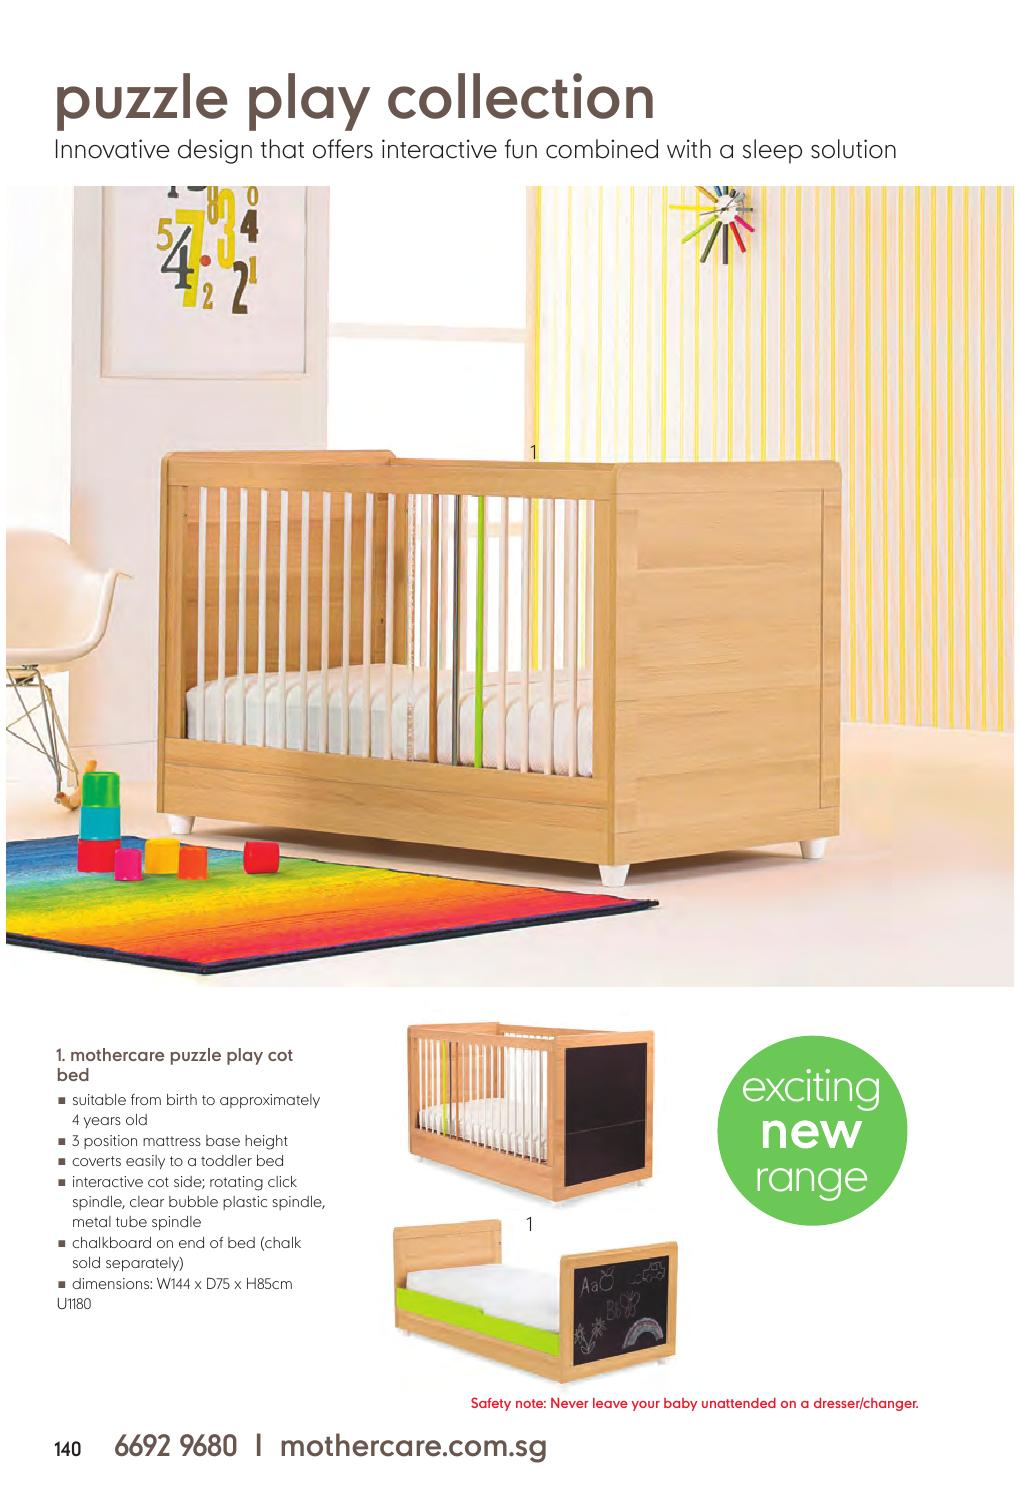 mothercare catalogue 2013 2014 by mothercare sg issuu. Black Bedroom Furniture Sets. Home Design Ideas